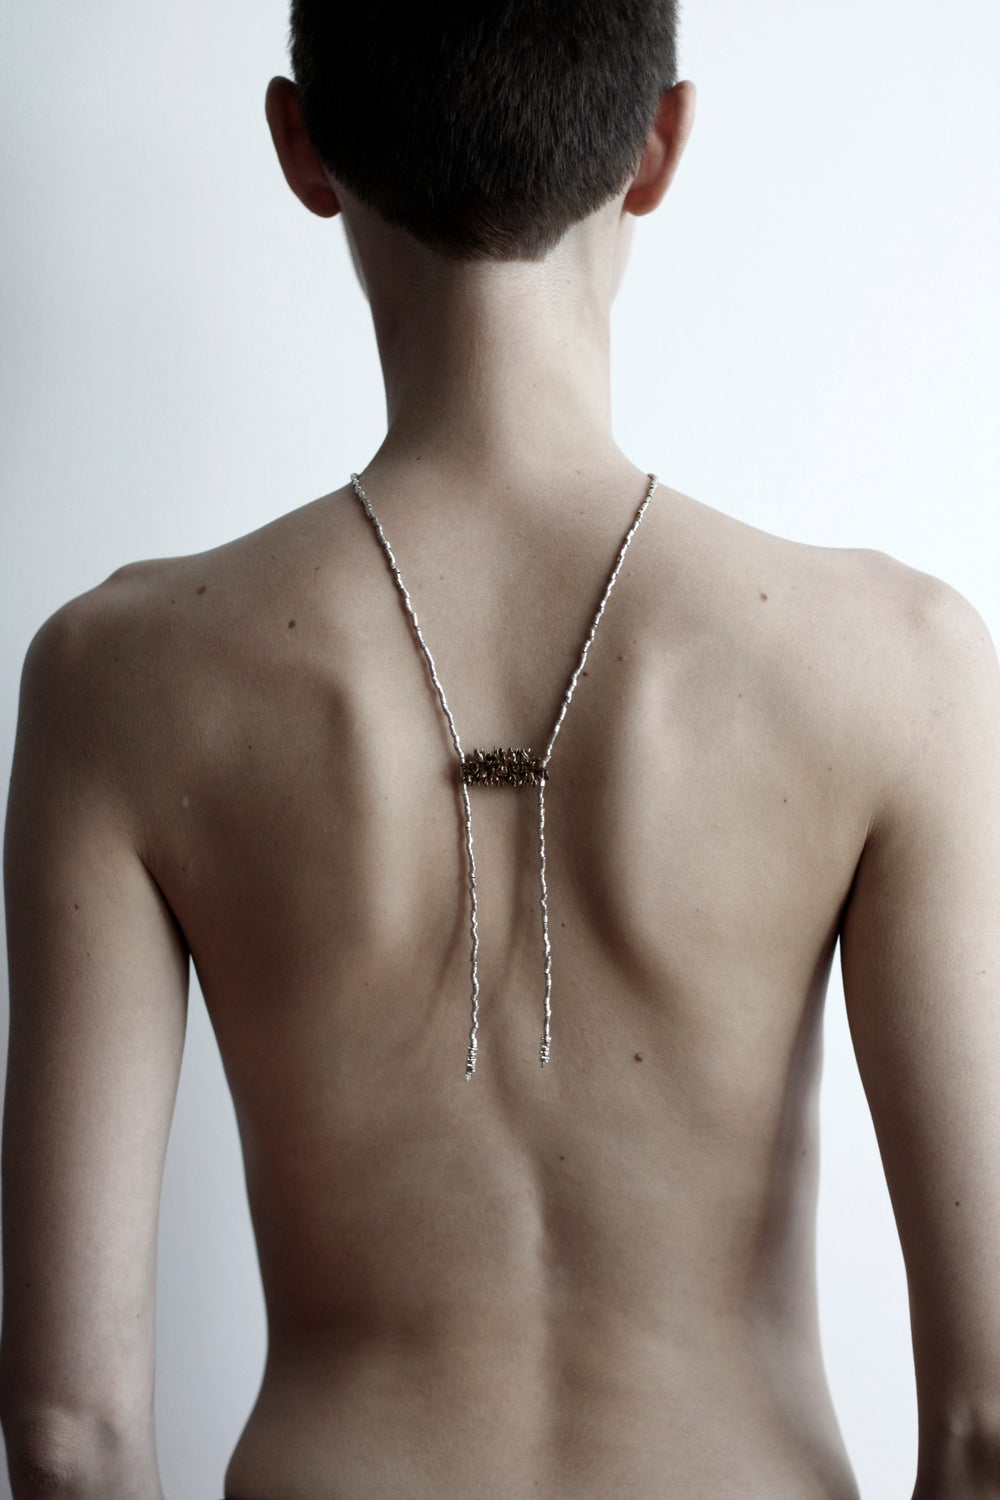 Image of Doug fir necklace